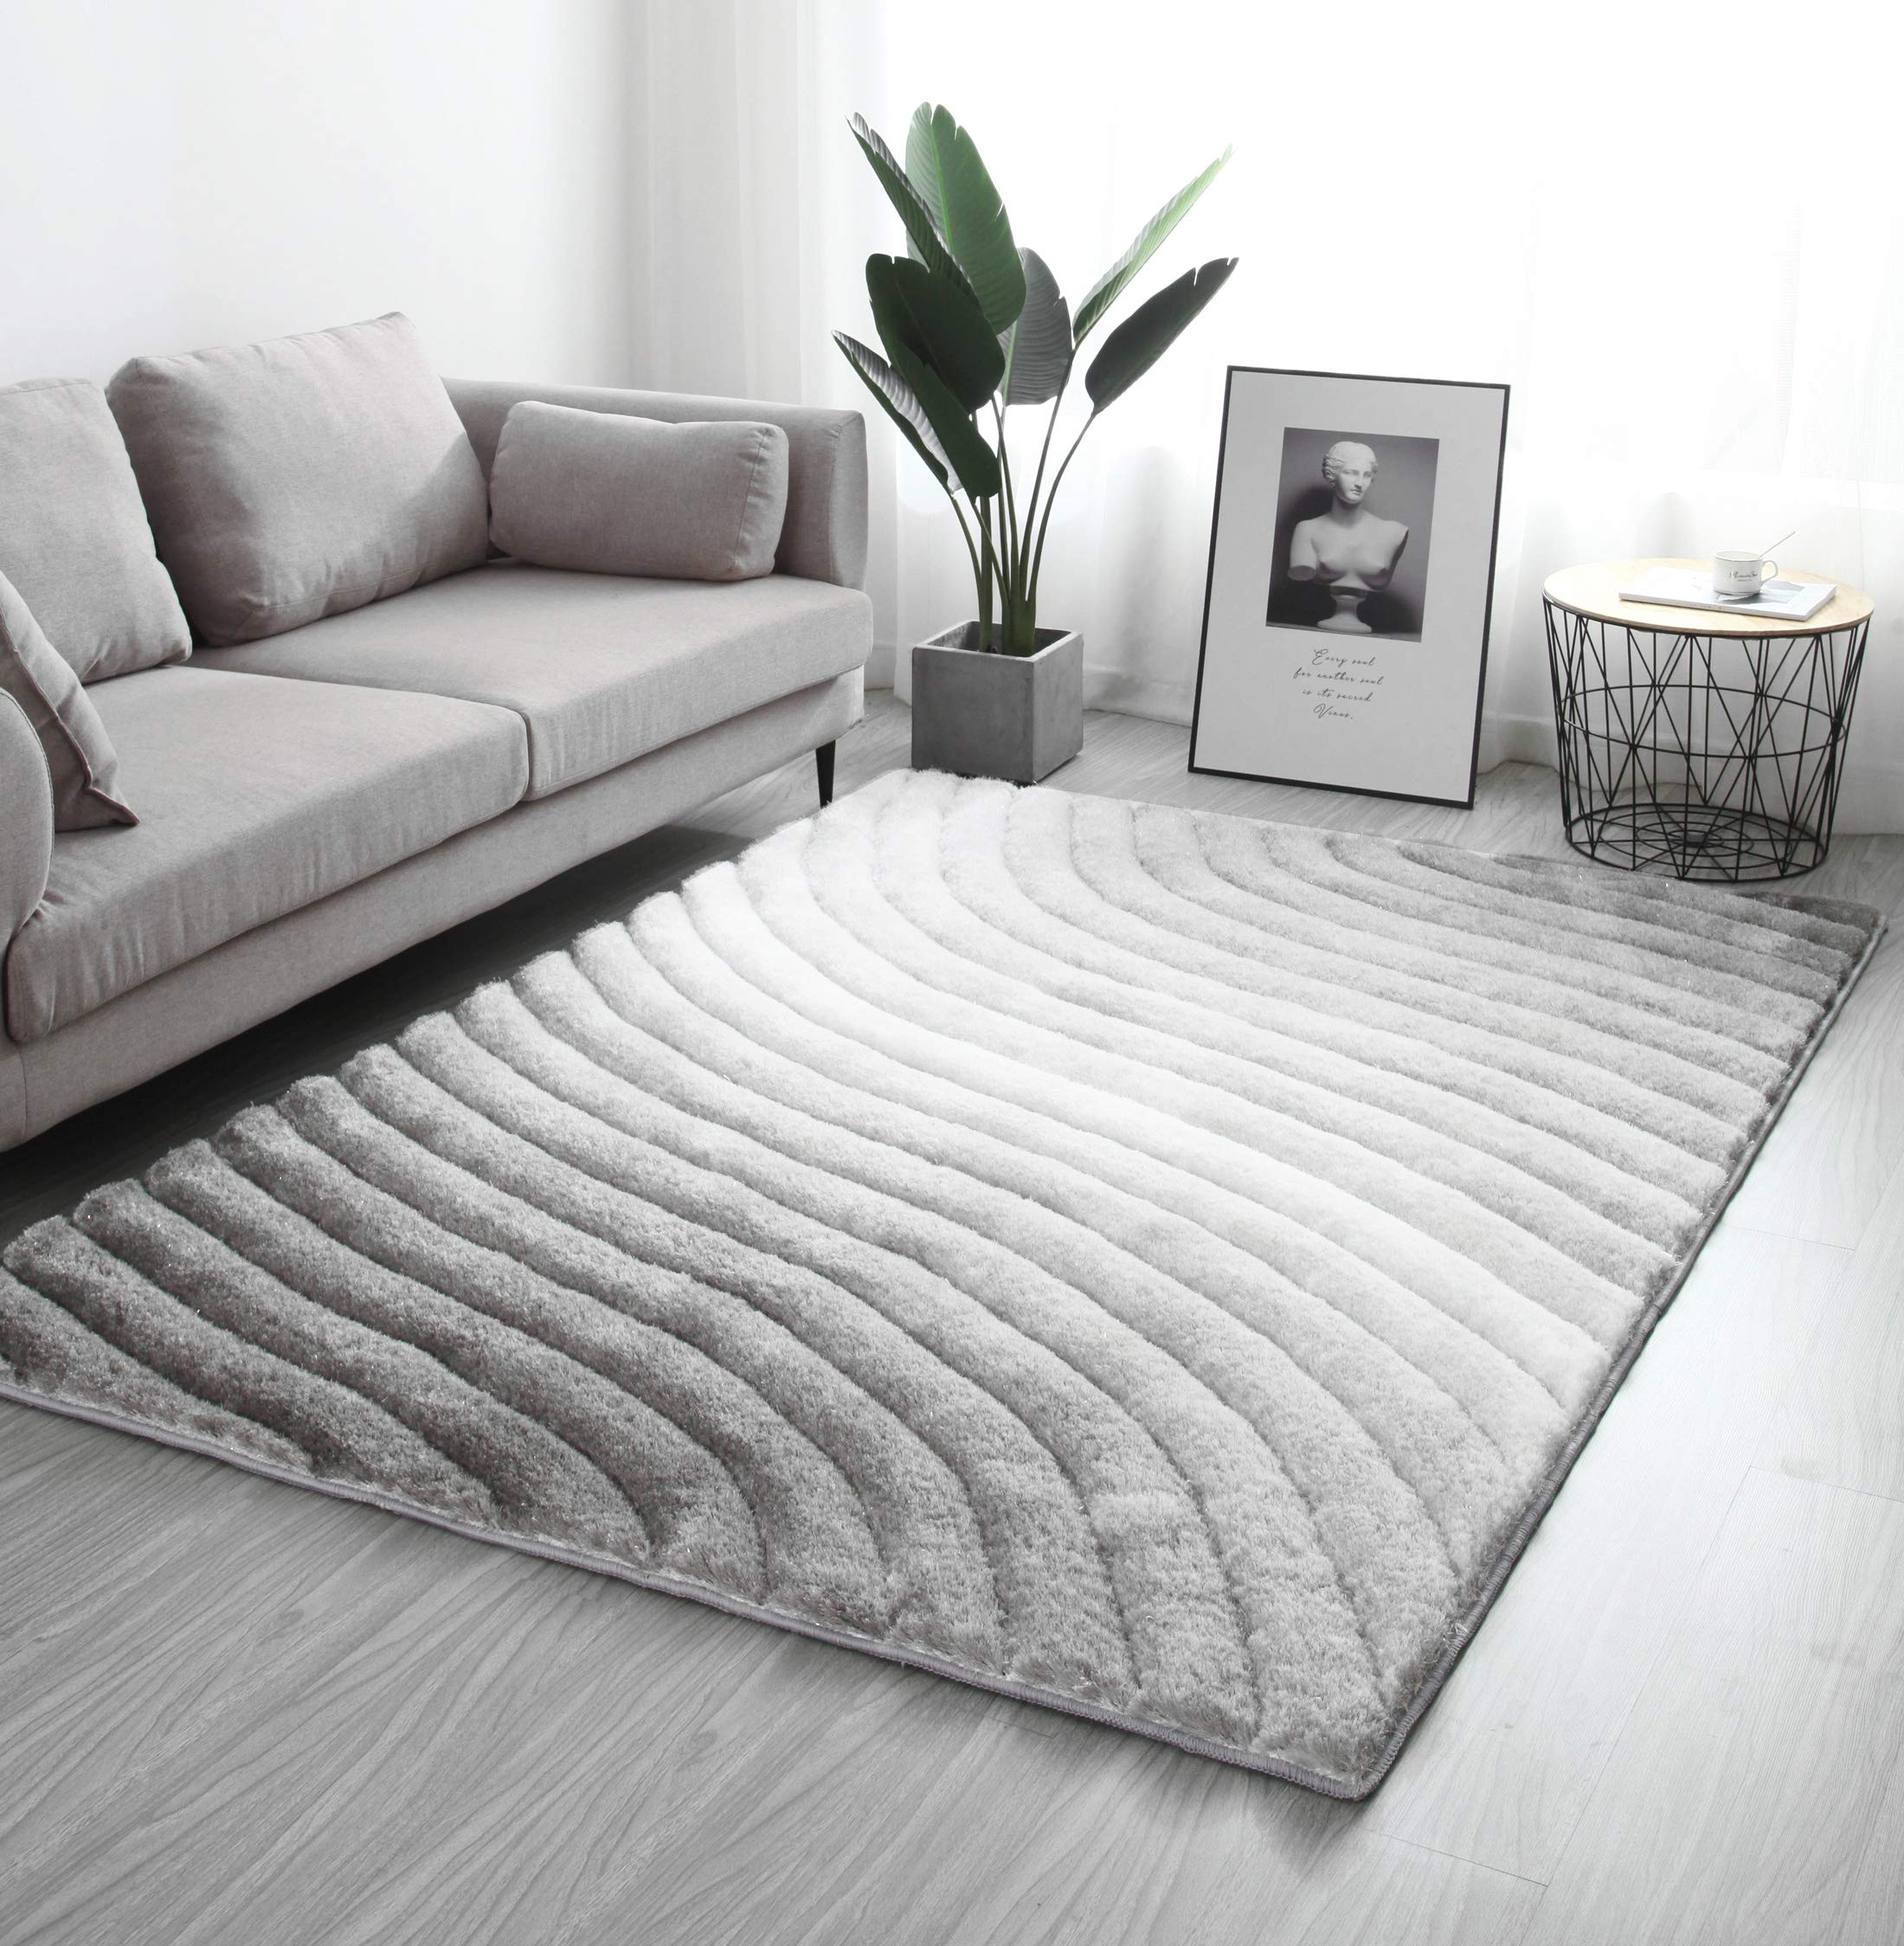 Modern Style Rugs Living Room Black Silver Grey White Sparkle Fluffy Soft Touch Pile Extra Large 3d Shaggy Rug White Grey 120x170cm Amazon Co Uk Kitchen Home